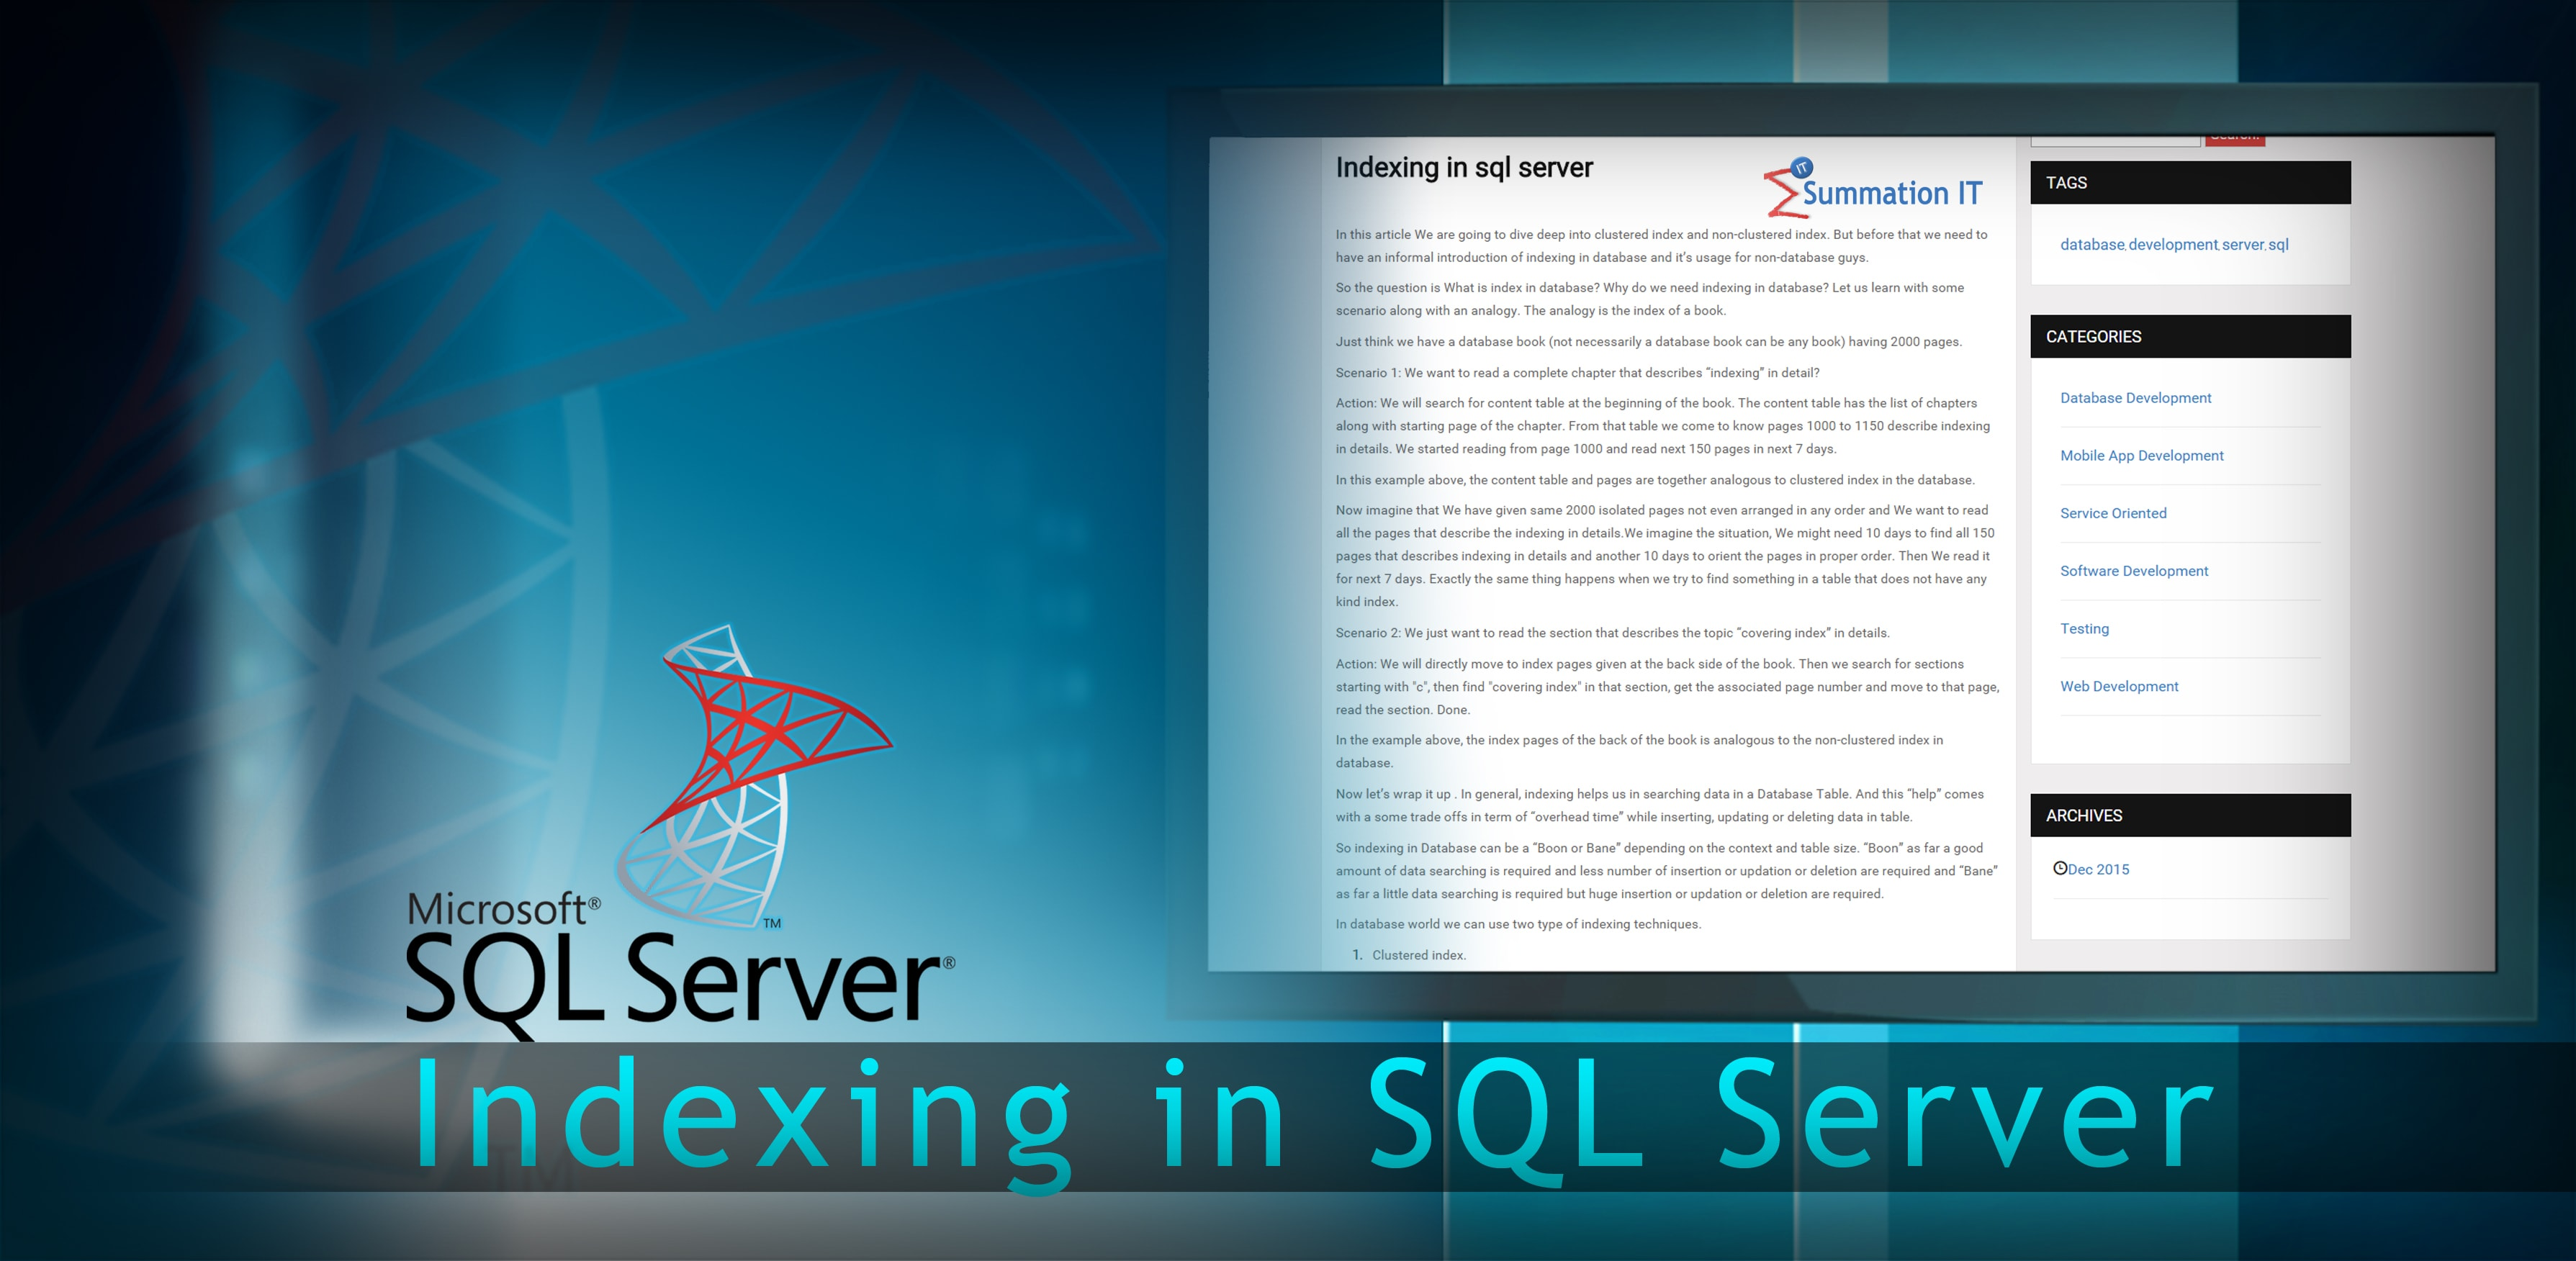 Indexing in SQL Server